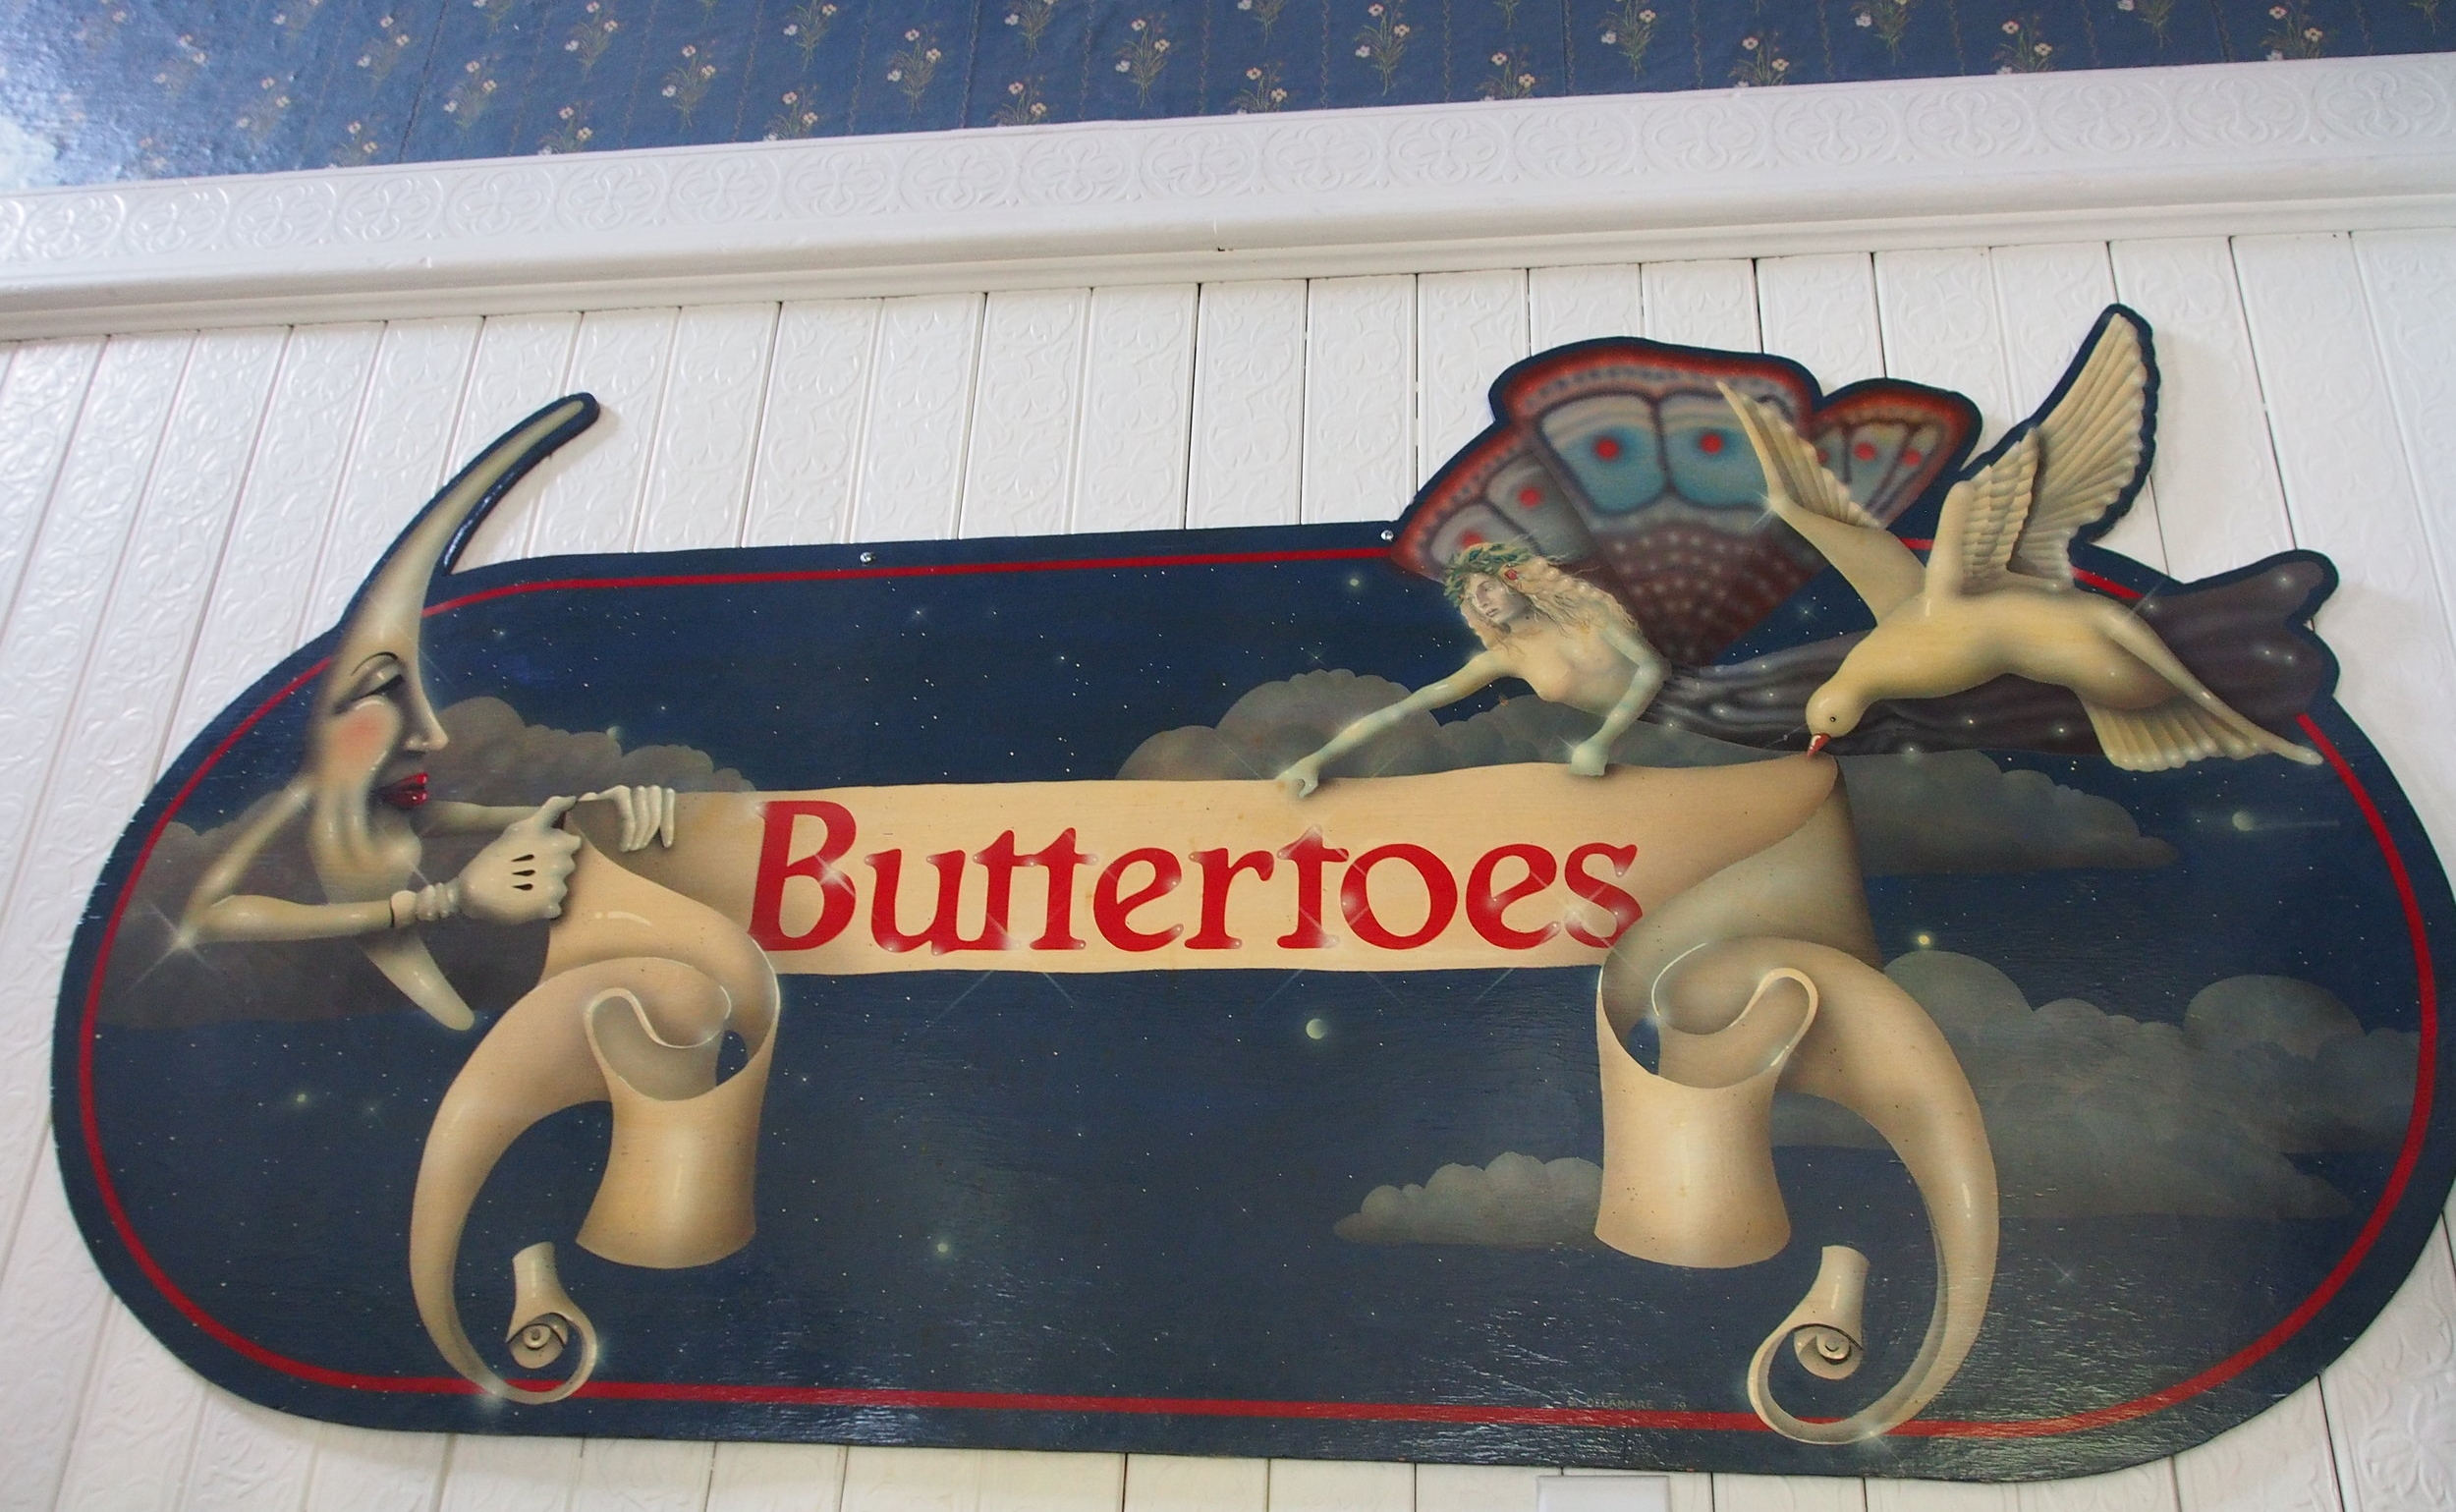 Buttertoes   Restaurant sign, painted by David Delamare